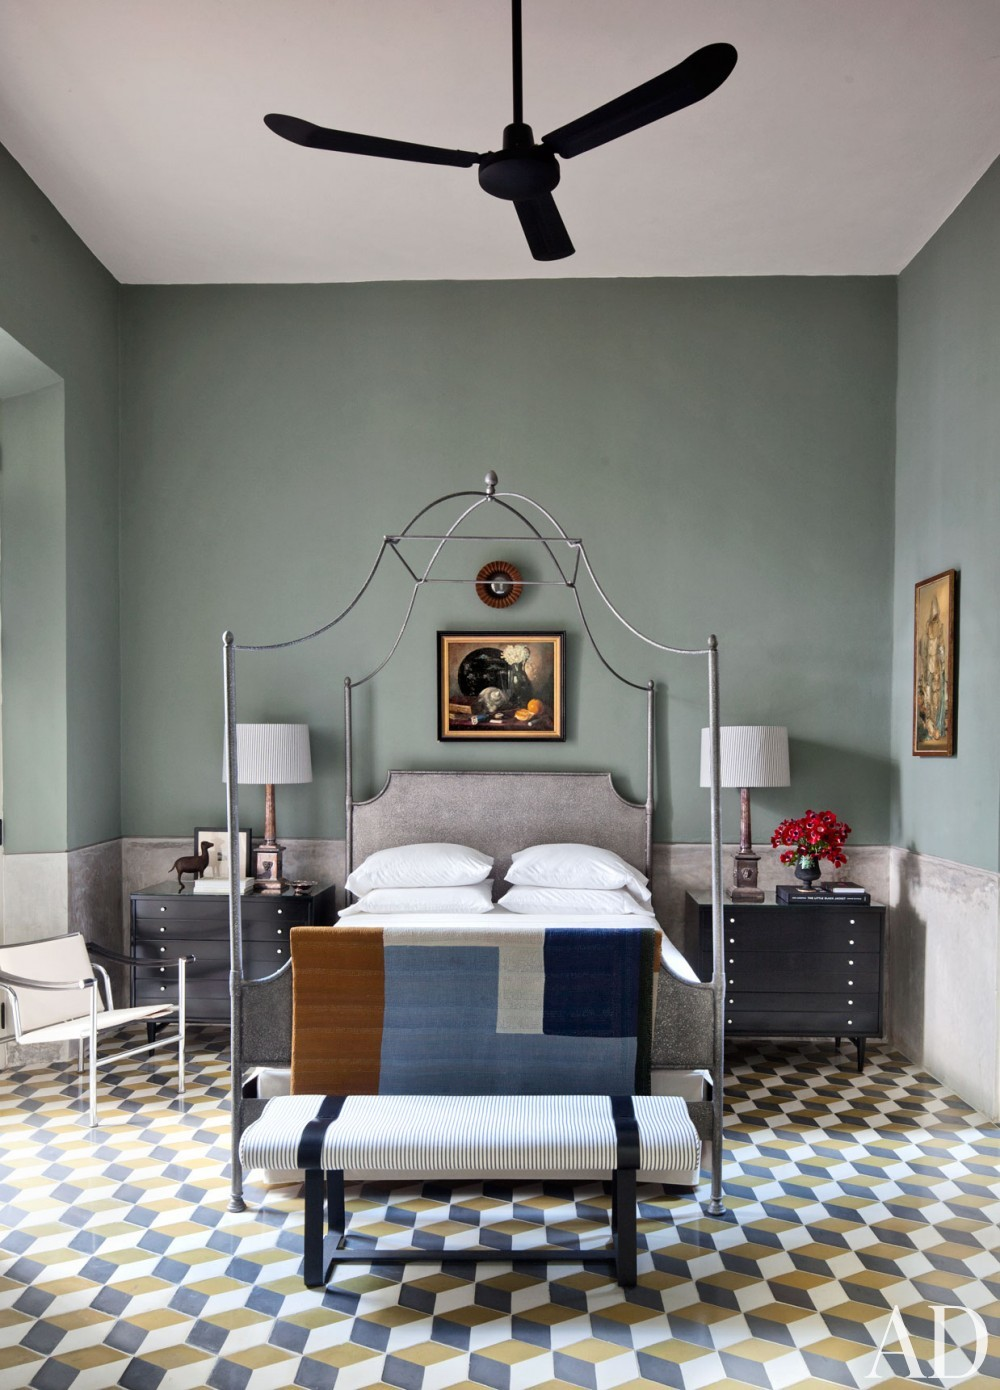 Exotic Bedroom by Robert Willson and David Serrano and Bohl Architects in Merida, Mexico